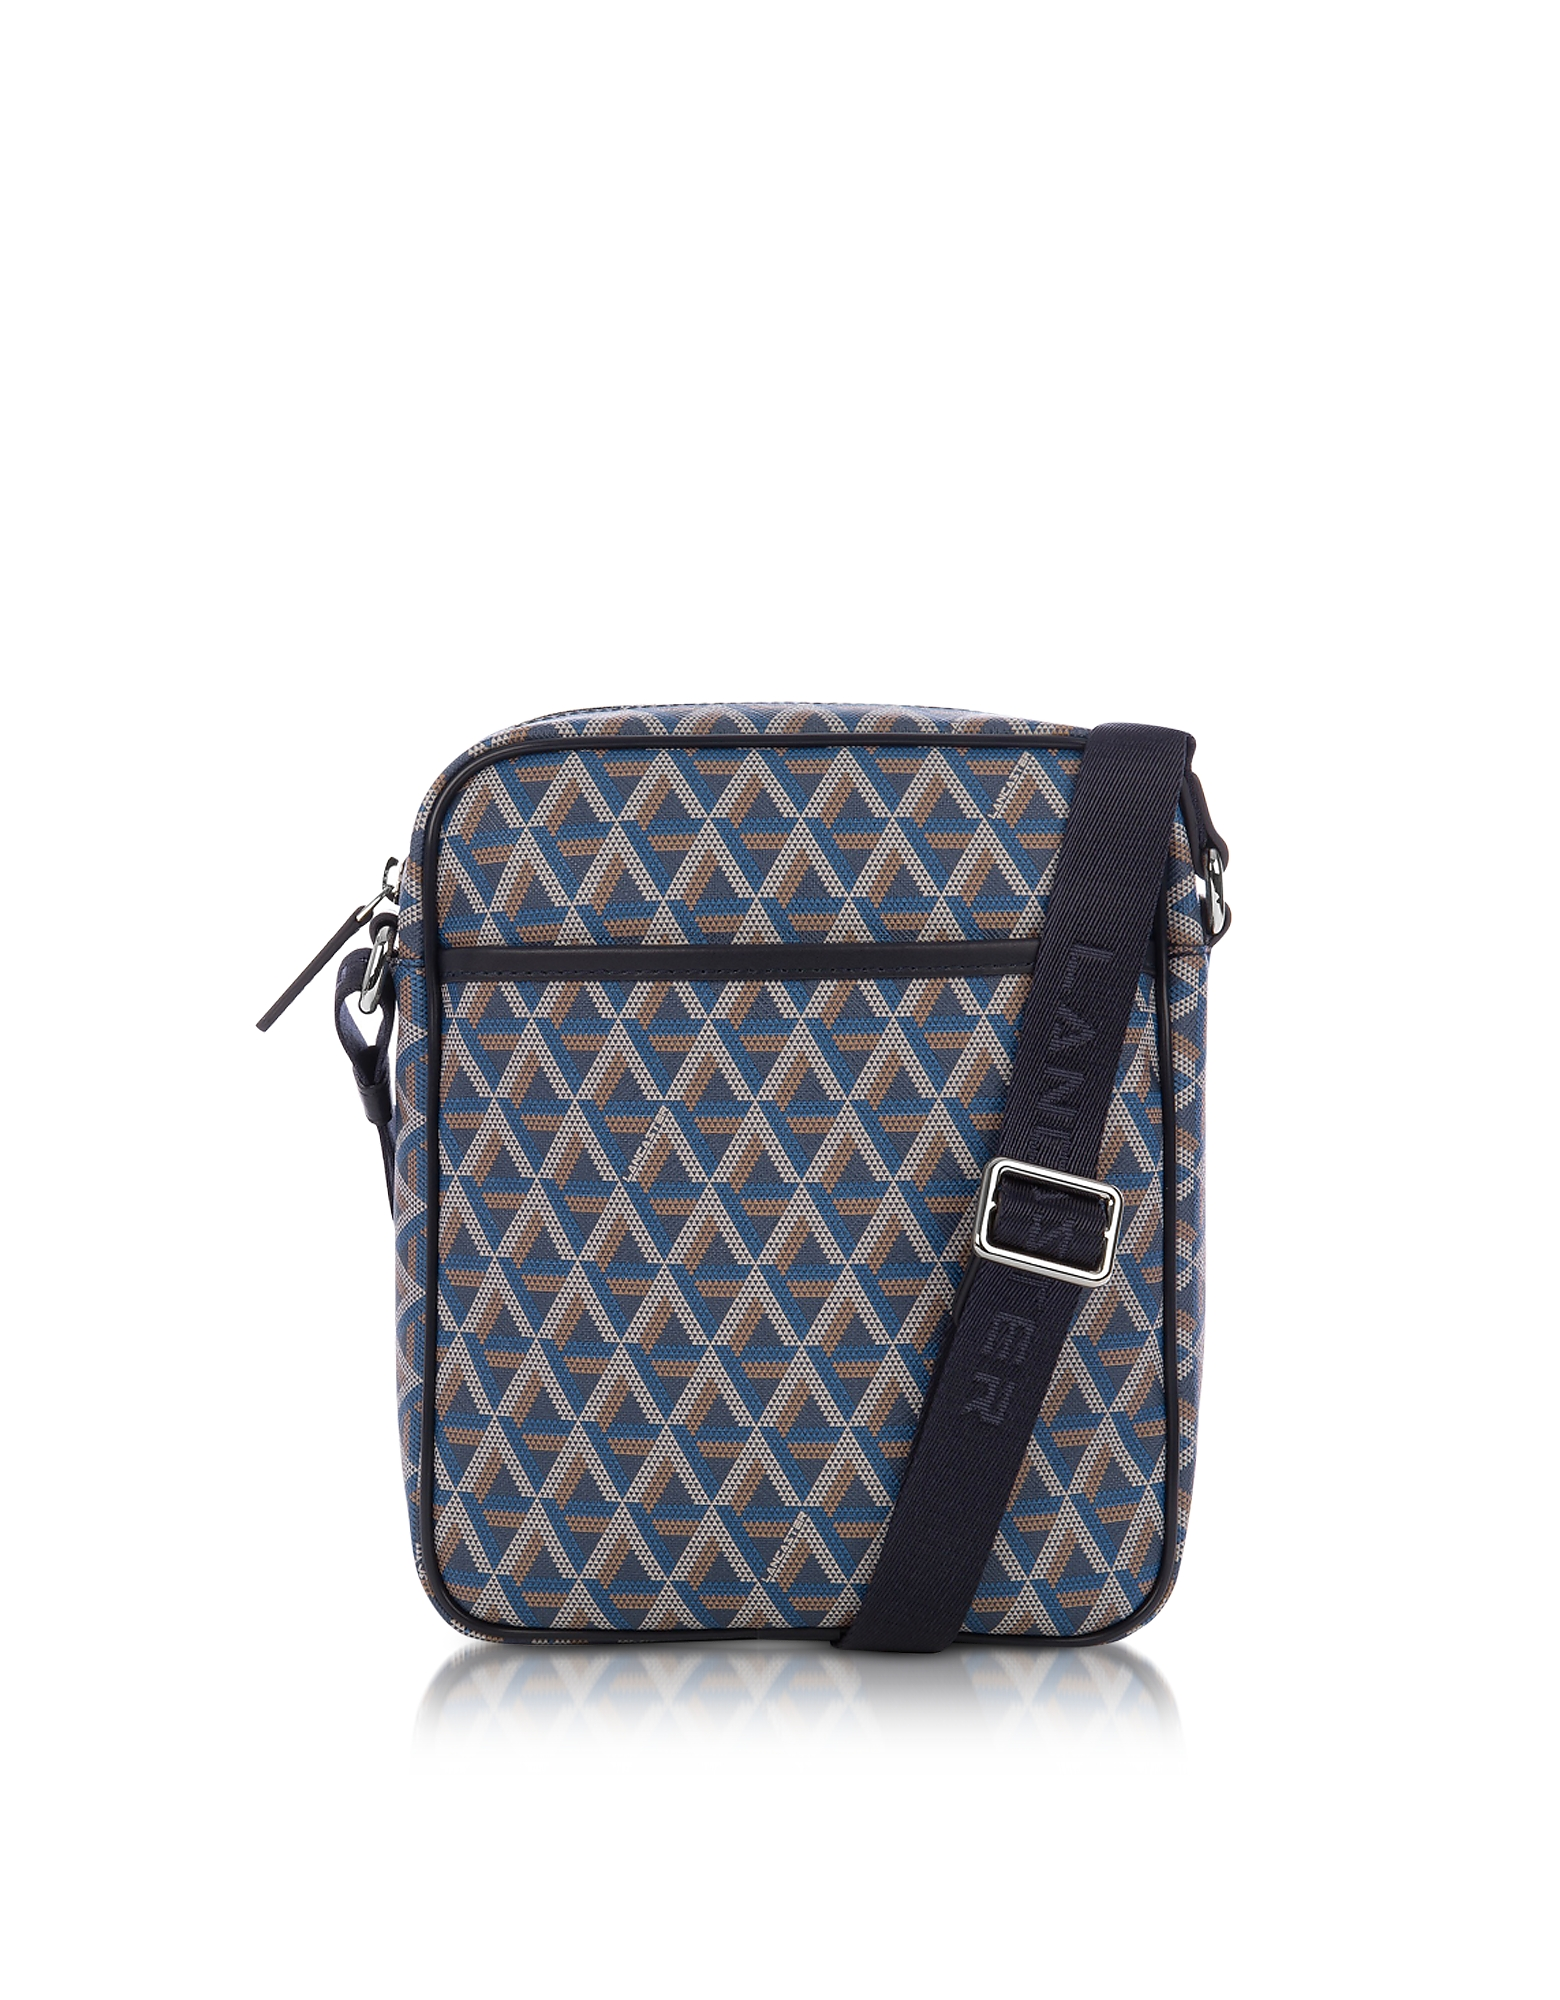 Ikon Borsa Crossbody in Canvas Stampato Blu e Pelle